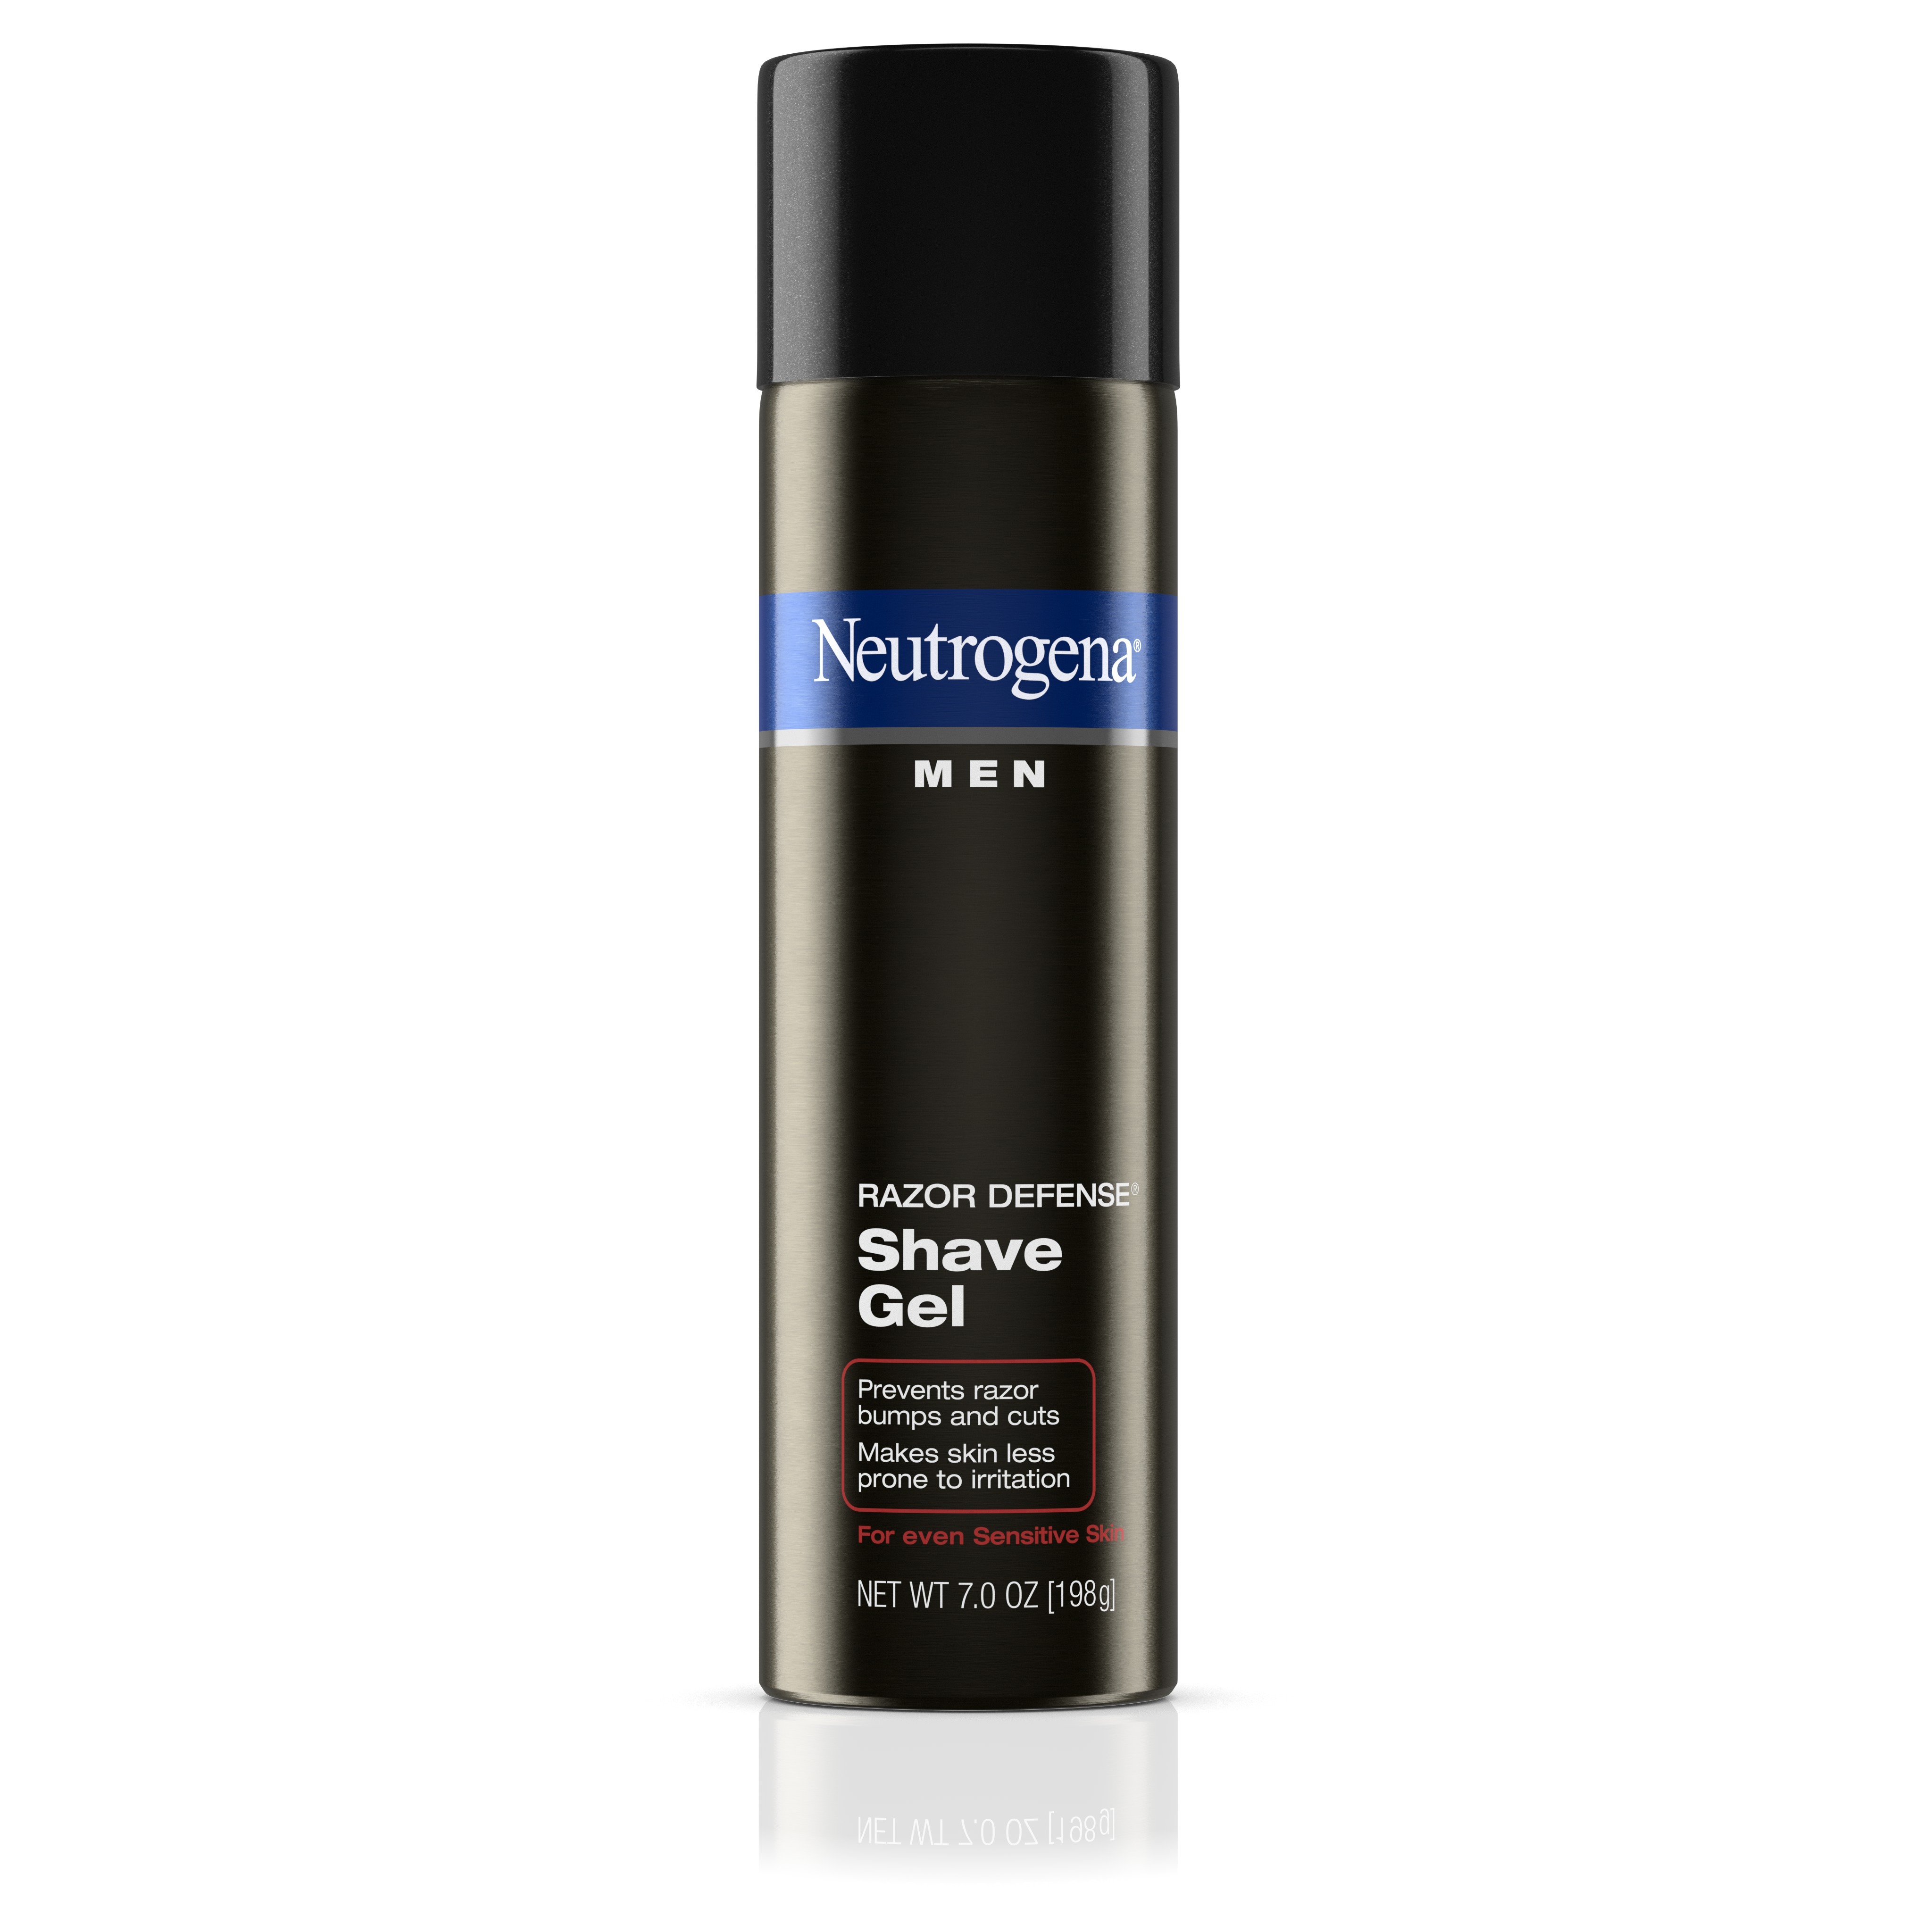 Neutrogena Men Razor Defense Shave Gel For Sensitive Skin, 7 oz